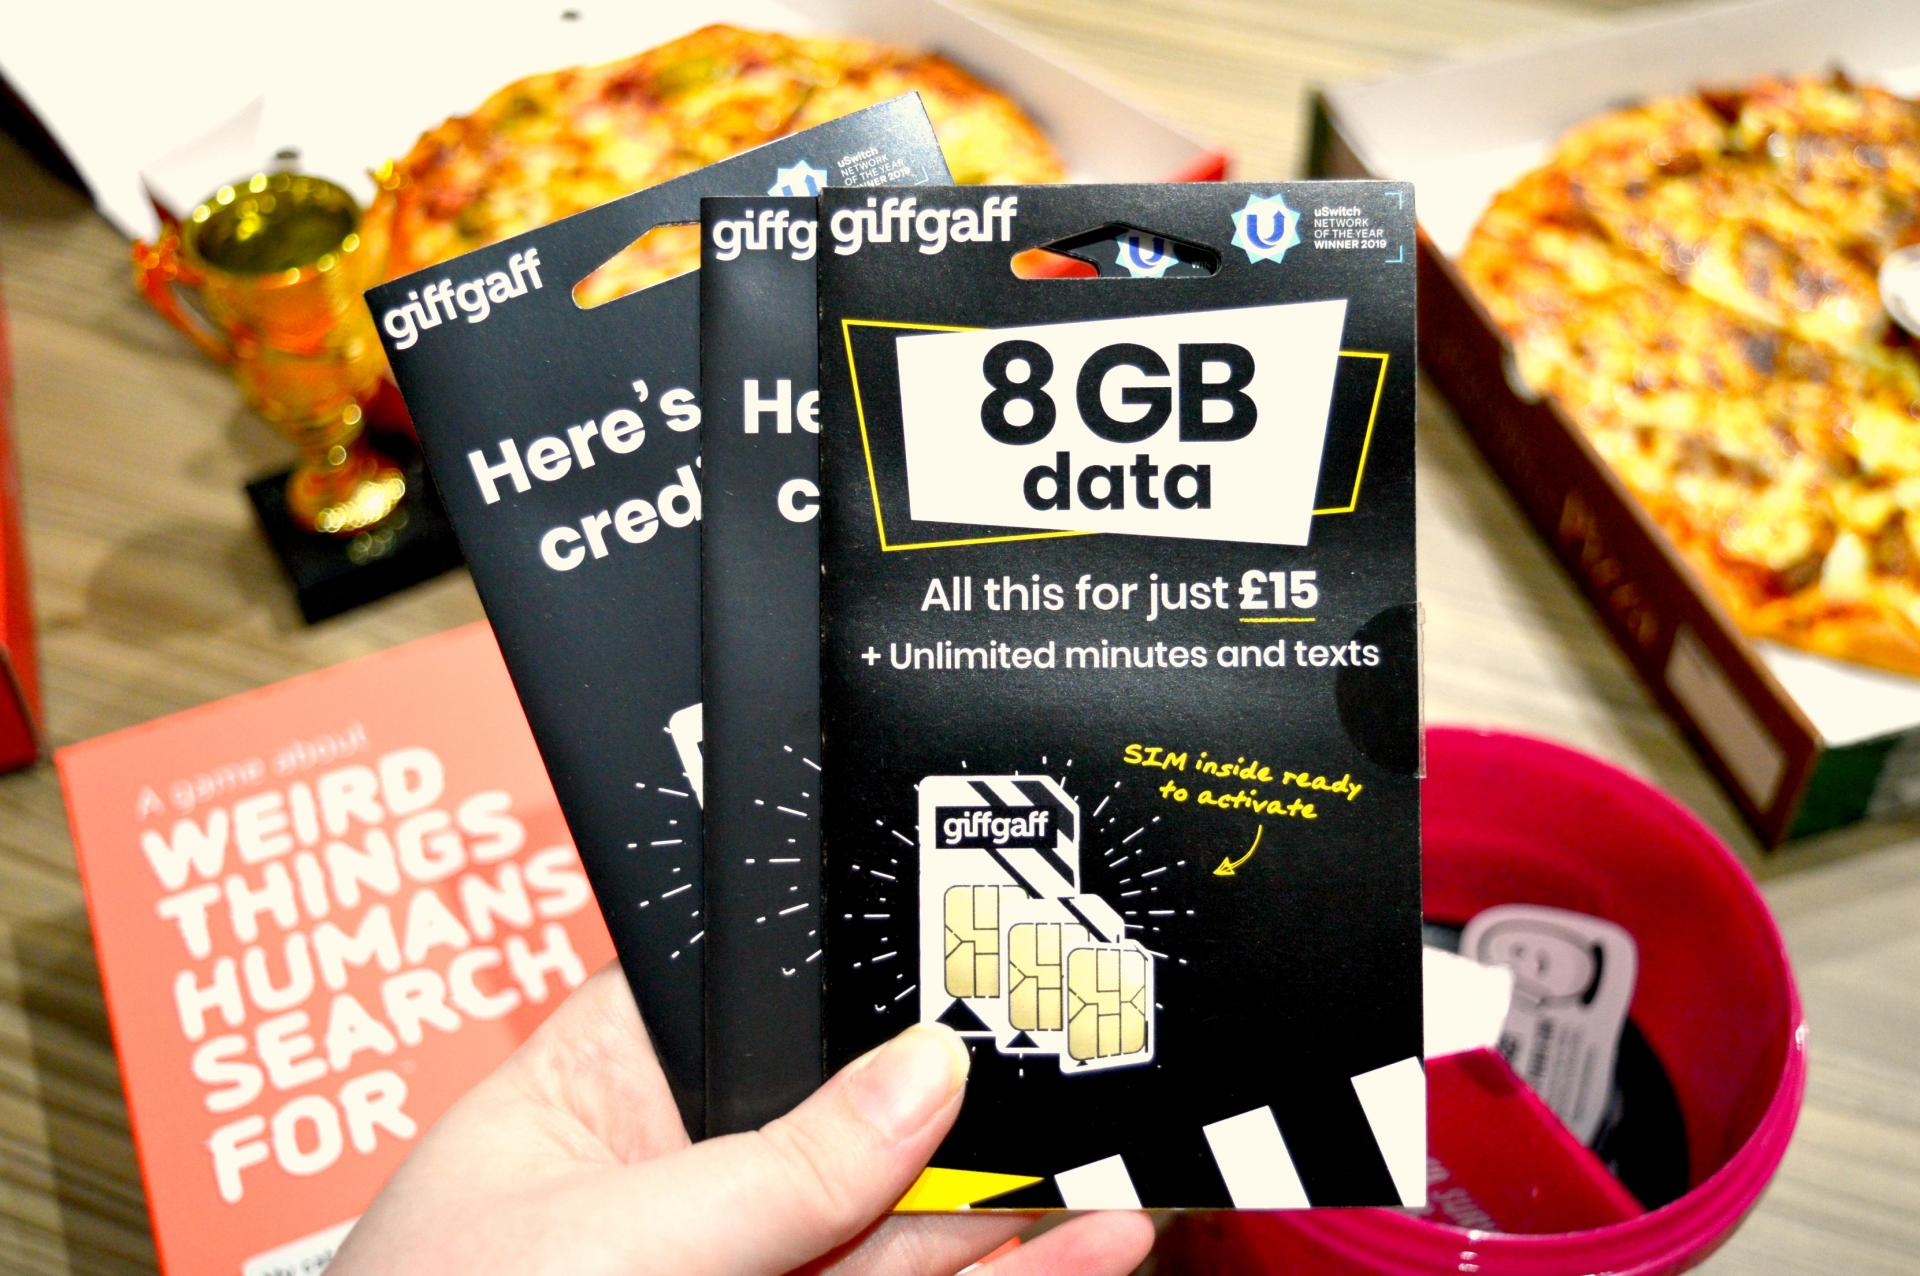 This is an image of giffgaff SIM cards which were kindly gifted to me as part of the #giffgaffgamers campaign.